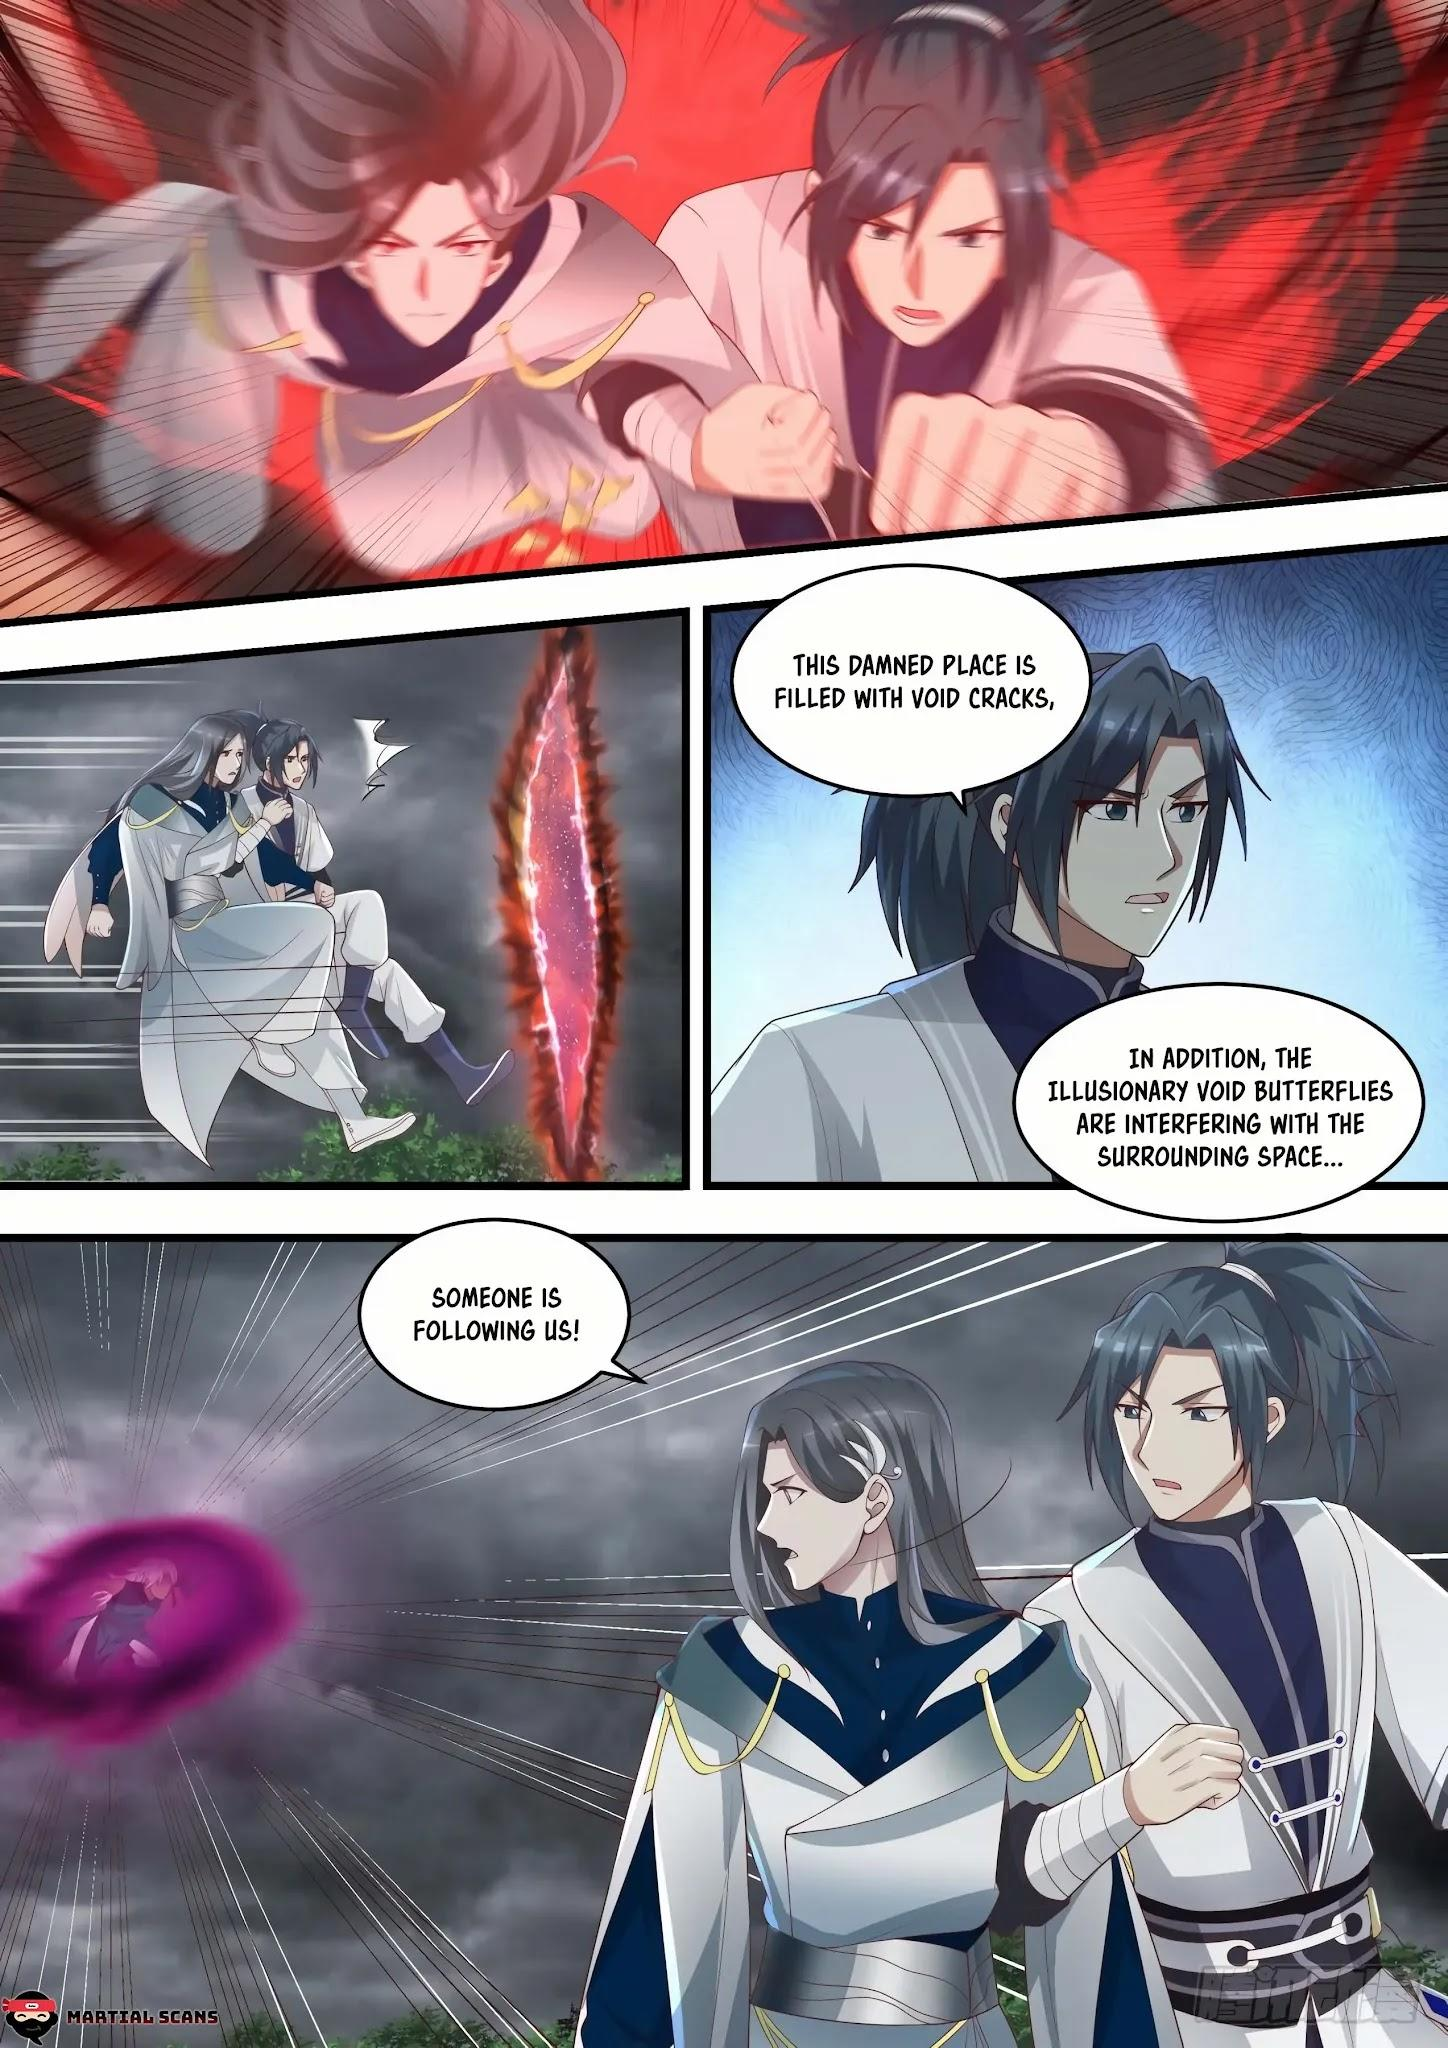 Martial Peak Chapter 1457: Illusionary Void Butterfly page 11 - Mangakakalots.com